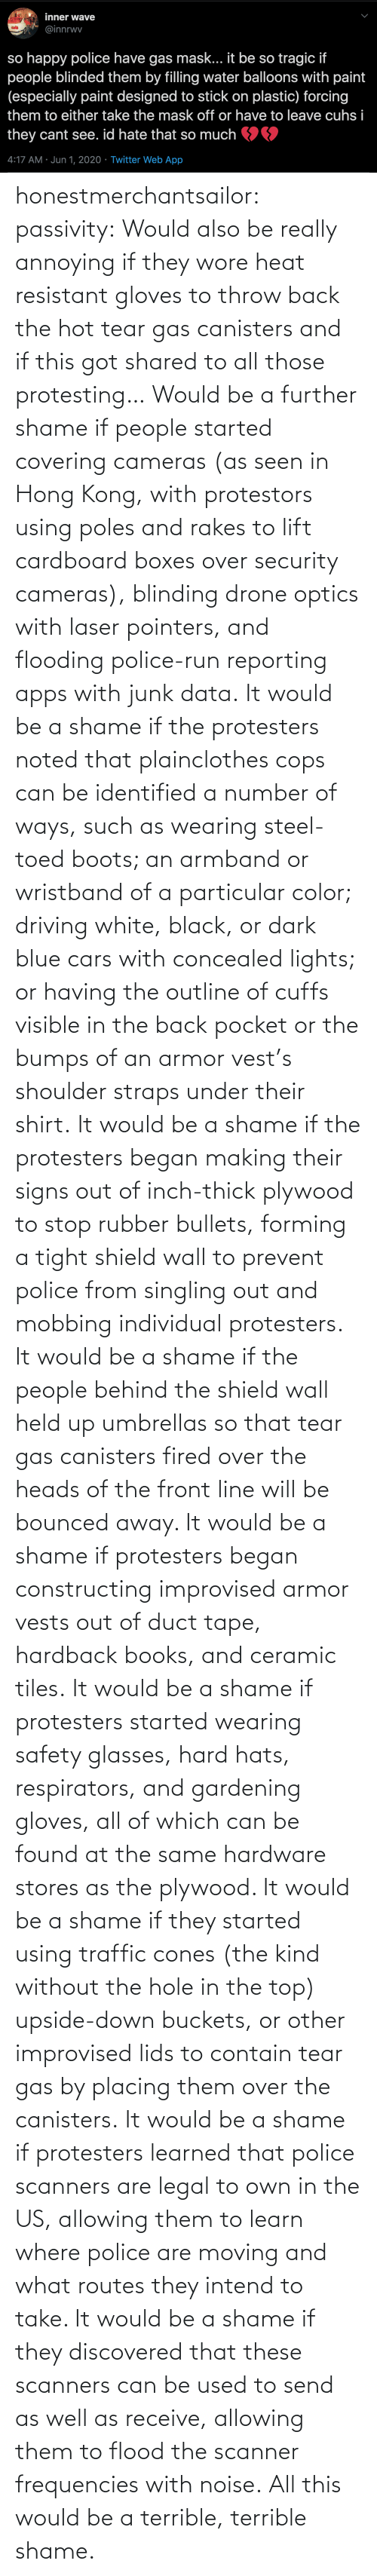 Shared: honestmerchantsailor: passivity: Would also be really annoying if they wore heat resistant gloves to throw back the hot tear gas canisters and if this got shared to all those protesting… Would be a further shame if people started covering cameras (as seen in Hong Kong, with protestors using poles and rakes to lift cardboard boxes over security cameras), blinding drone optics with laser pointers, and flooding police-run reporting apps with junk data. It would be a shame if the protesters noted that plainclothes cops can be identified a number of ways, such as wearing steel-toed boots; an armband or wristband of a particular color; driving white, black, or dark blue cars with concealed lights; or having the outline of cuffs visible in the back pocket or the bumps of an armor vest's shoulder straps under their shirt. It would be a shame if the protesters began making their signs out of inch-thick plywood to stop rubber bullets, forming a tight shield wall to prevent police from singling out and mobbing individual protesters. It would be a shame if the people behind the shield wall held up umbrellas so that tear gas canisters fired over the heads of the front line will be bounced away. It would be a shame if protesters began constructing improvised armor vests out of duct tape, hardback books, and ceramic tiles. It would be a shame if protesters started wearing safety glasses, hard hats, respirators, and gardening gloves, all of which can be found at the same hardware stores as the plywood. It would be a shame if they started using traffic cones (the kind without the hole in the top) upside-down buckets, or other improvised lids to contain tear gas by placing them over the canisters. It would be a shame if protesters learned that police scanners are legal to own in the US, allowing them to learn where police are moving and what routes they intend to take. It would be a shame if they discovered that these scanners can be used to send as well as receive, allowing them to flood the scanner frequencies with noise. All this would be a terrible, terrible shame.